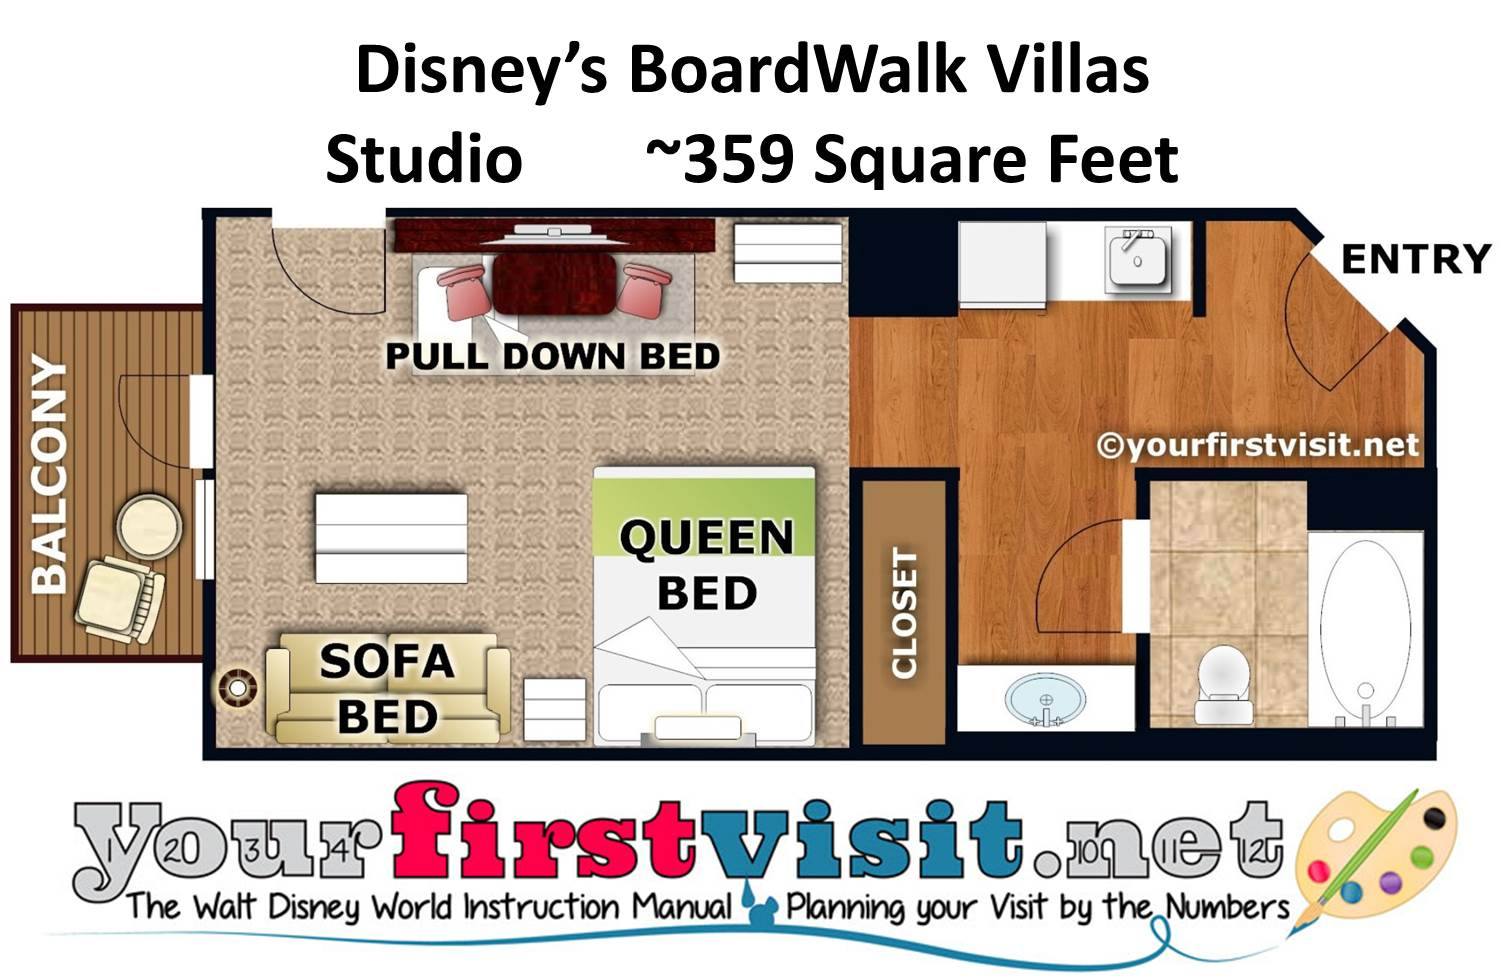 photo tour of a studio at disney 39 s boardwalk villas. Black Bedroom Furniture Sets. Home Design Ideas